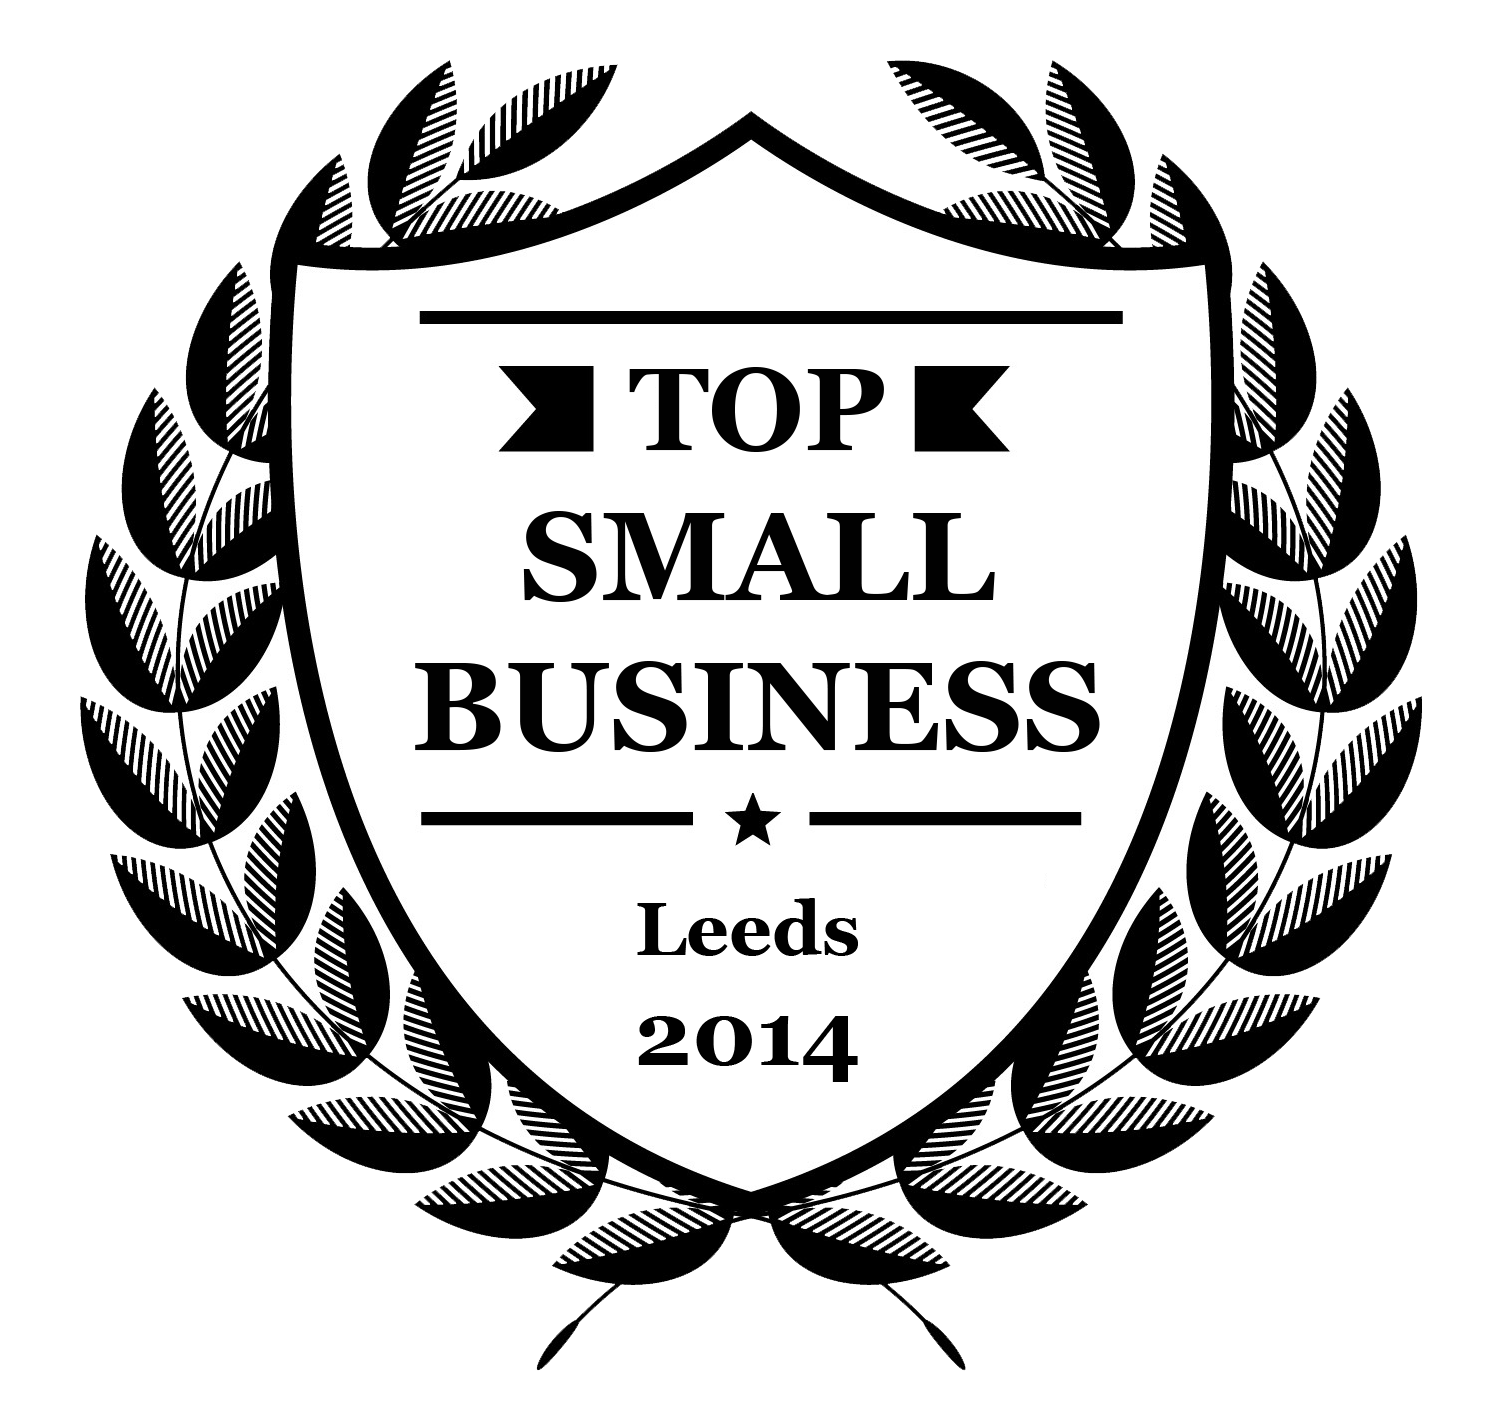 Sands Wealth Management - Top small business award 2014